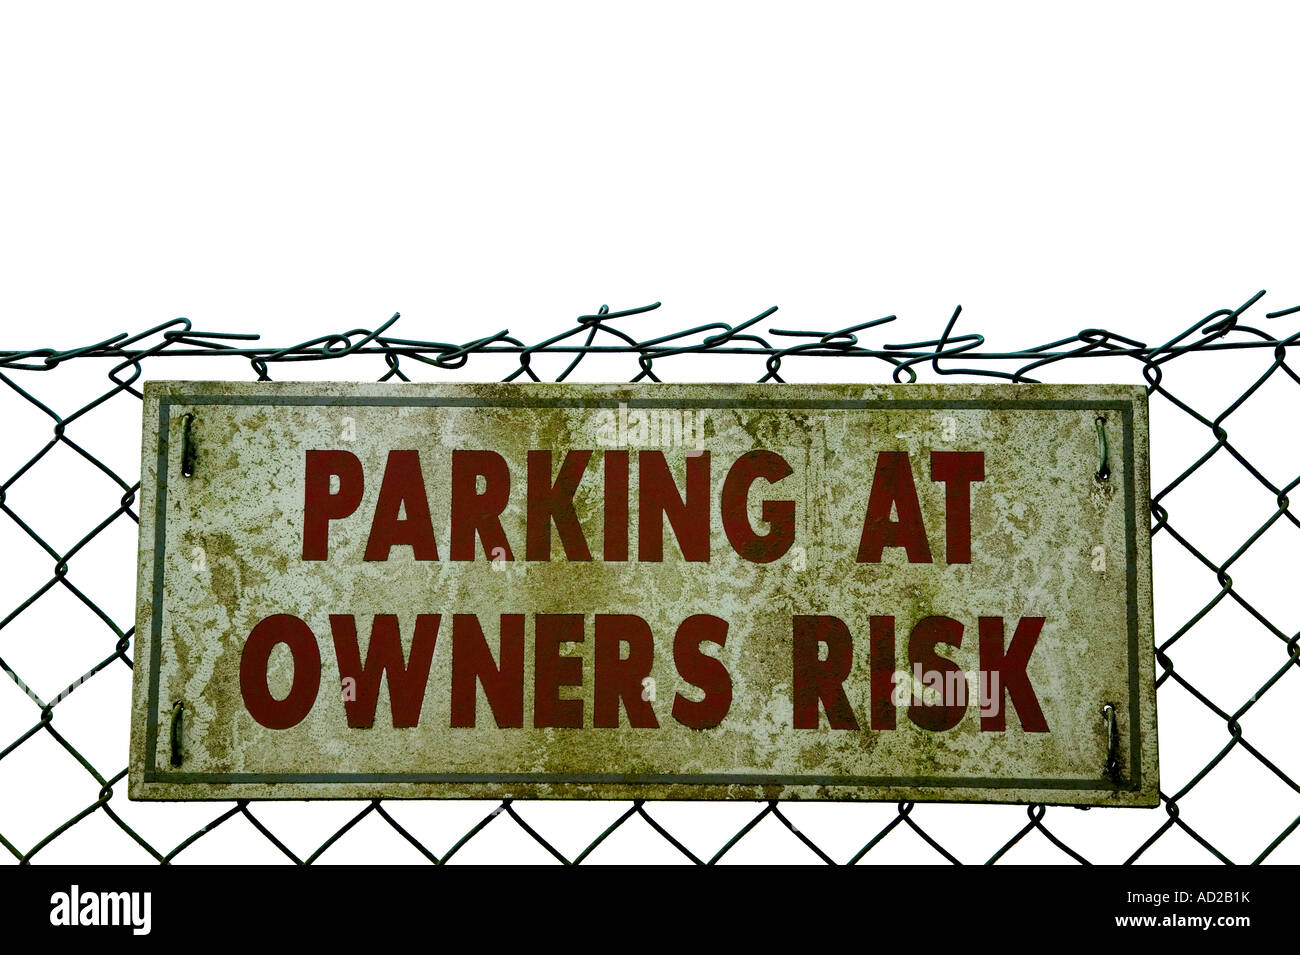 Grungey old Parking sign on a wire fence isolated on white - Stock Image